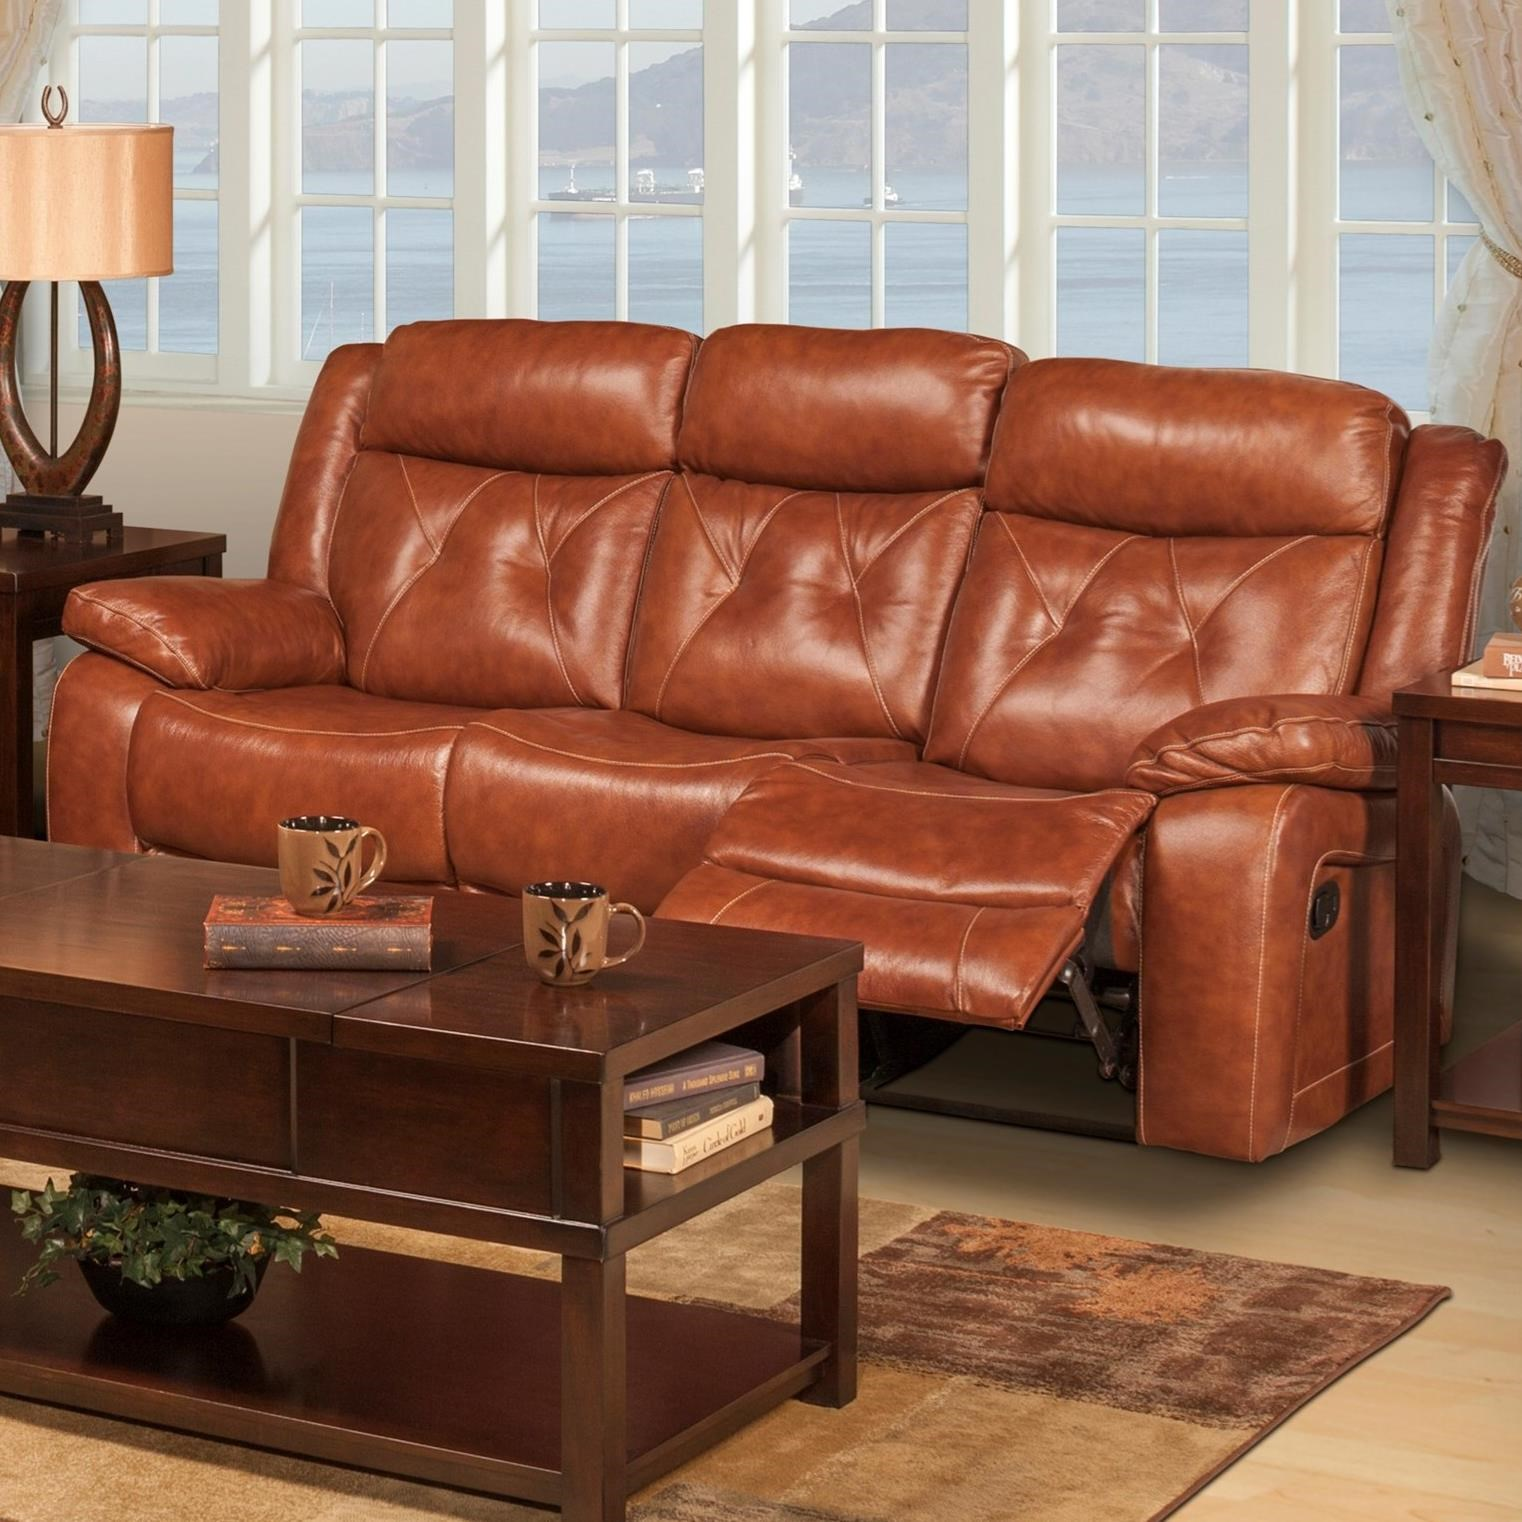 Pleasing New Classic Benedict Casual Reclining Sofa With Tufted Back Caraccident5 Cool Chair Designs And Ideas Caraccident5Info